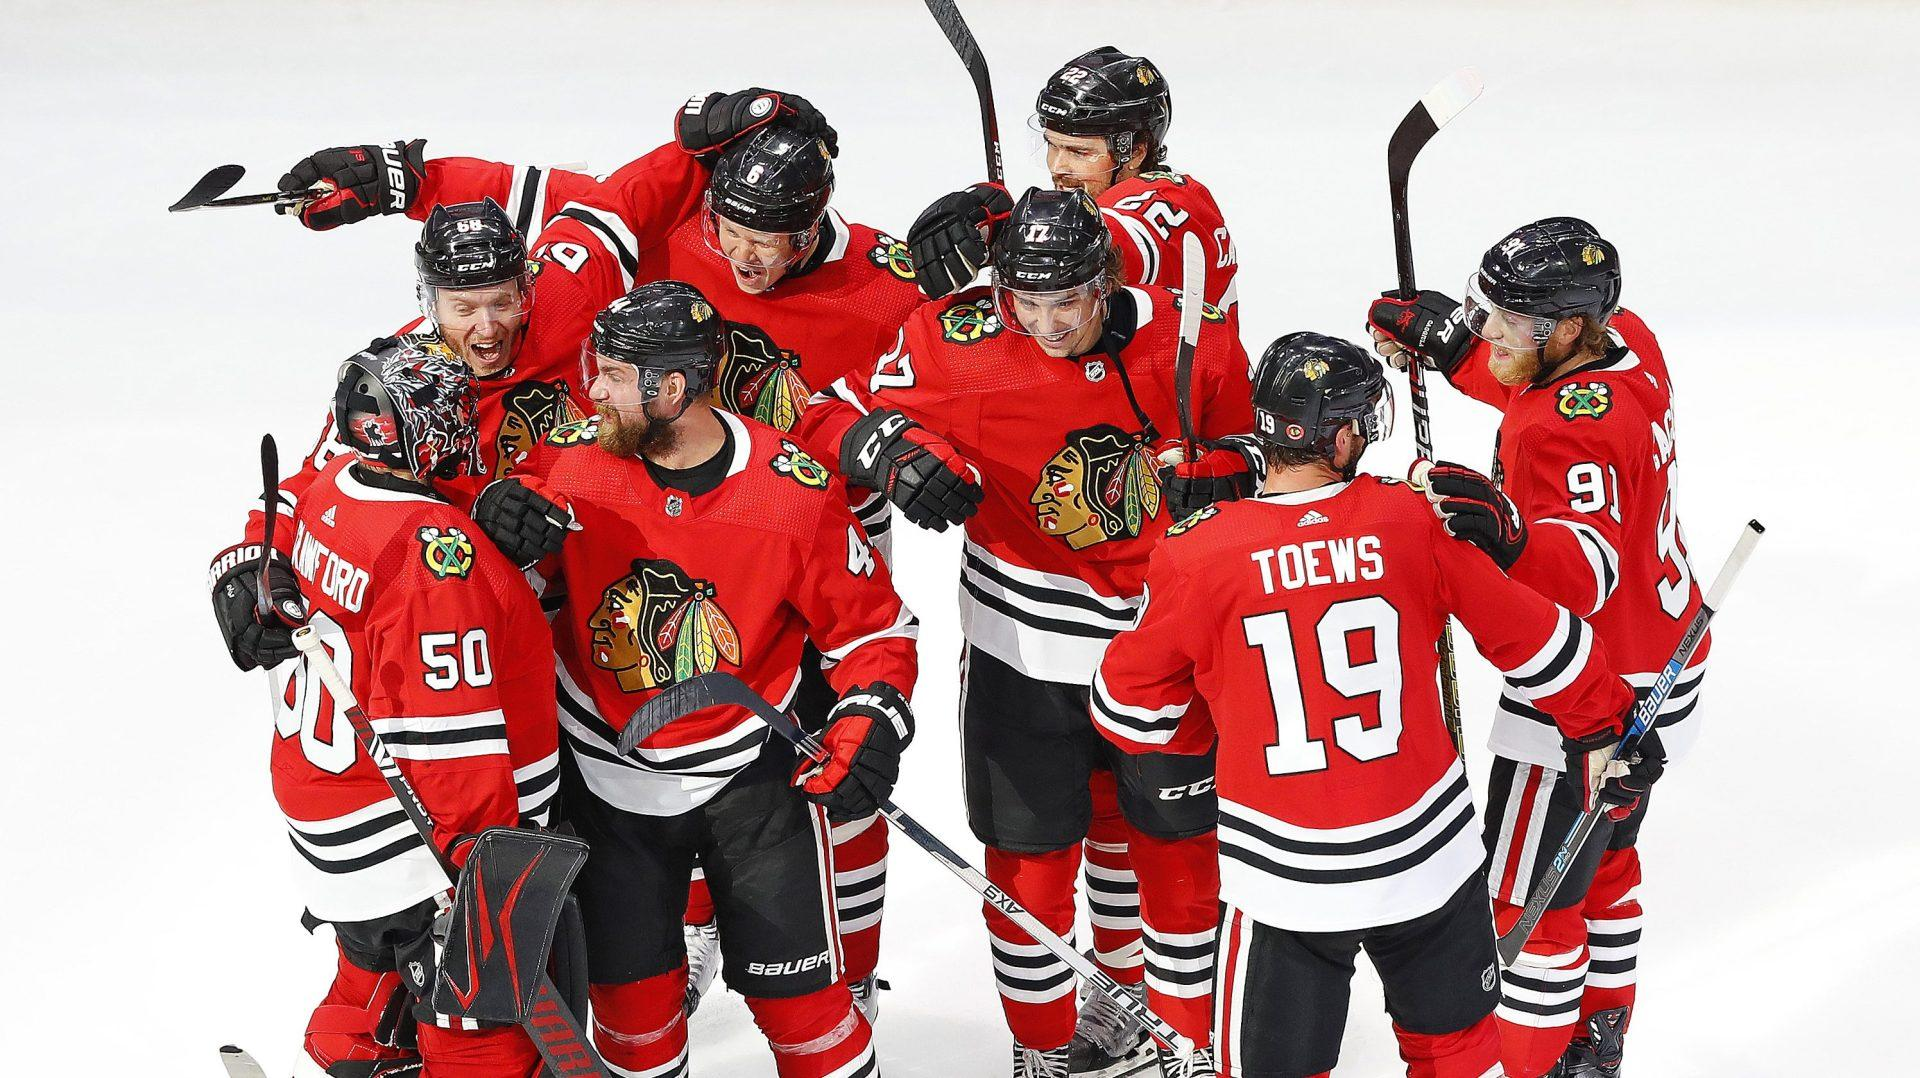 'Wild' NHL playoffs move into next stage with final 16 teams